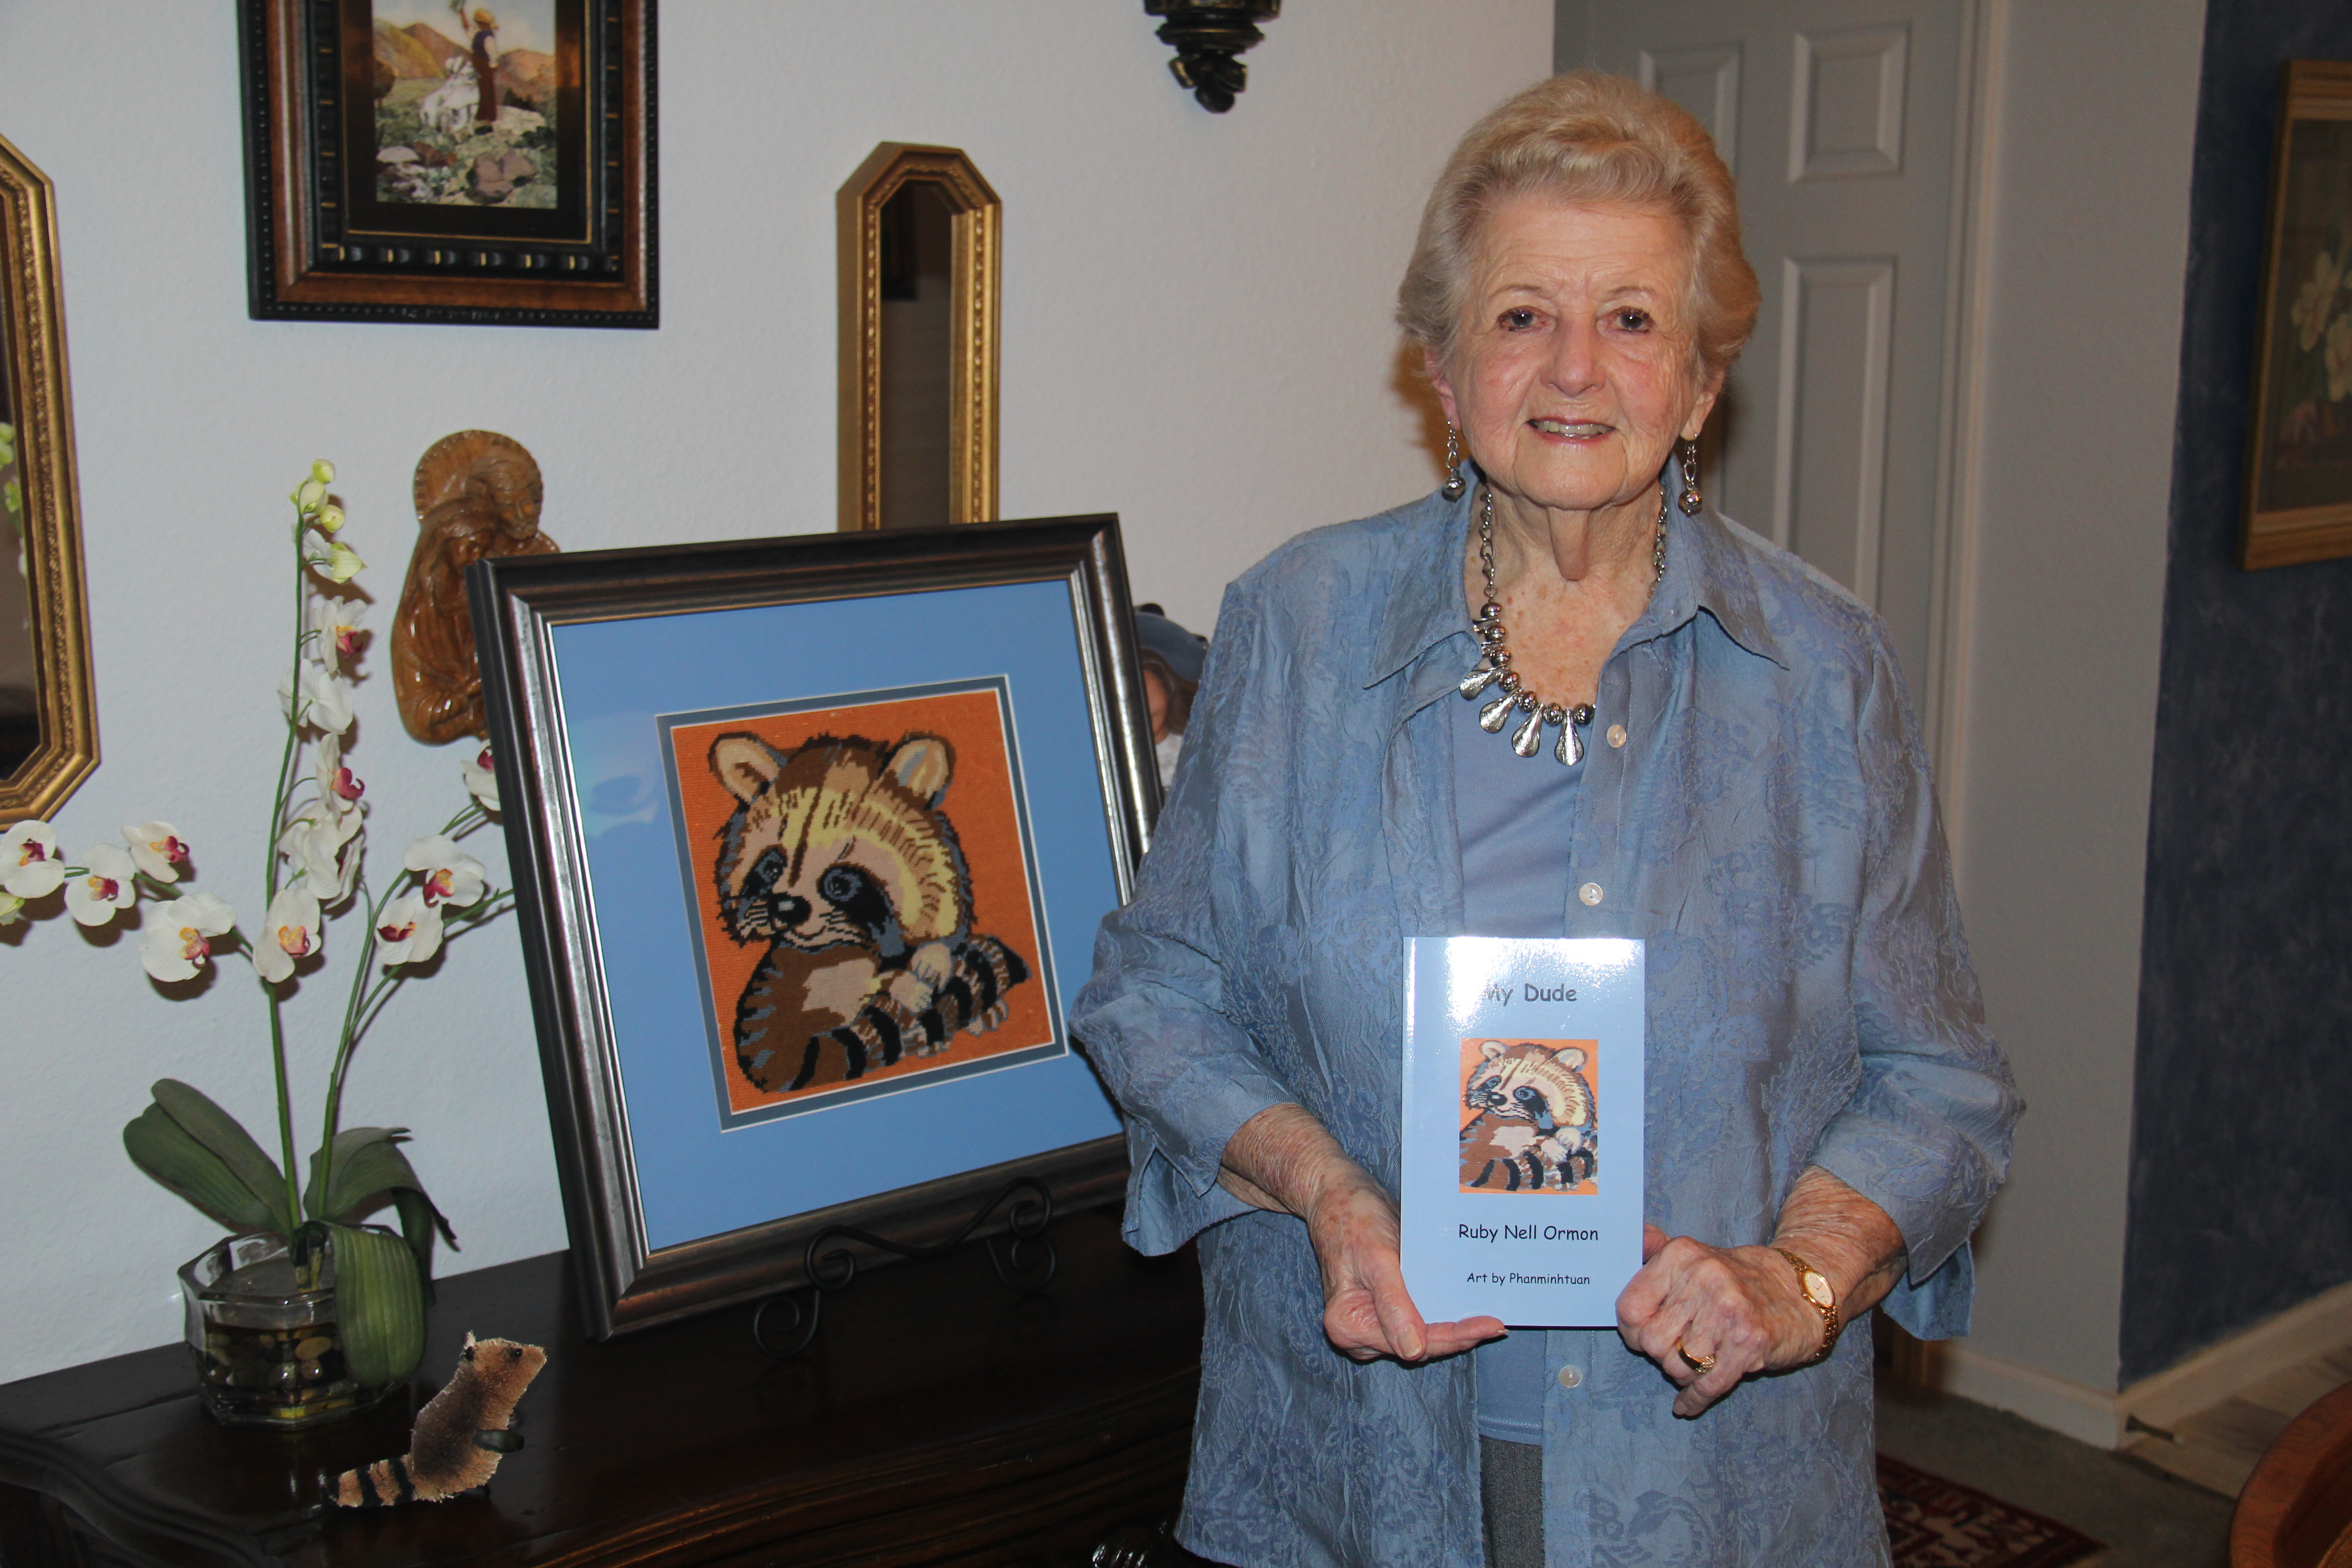 Highland Springs resident & author, Ruby Nell Ormon